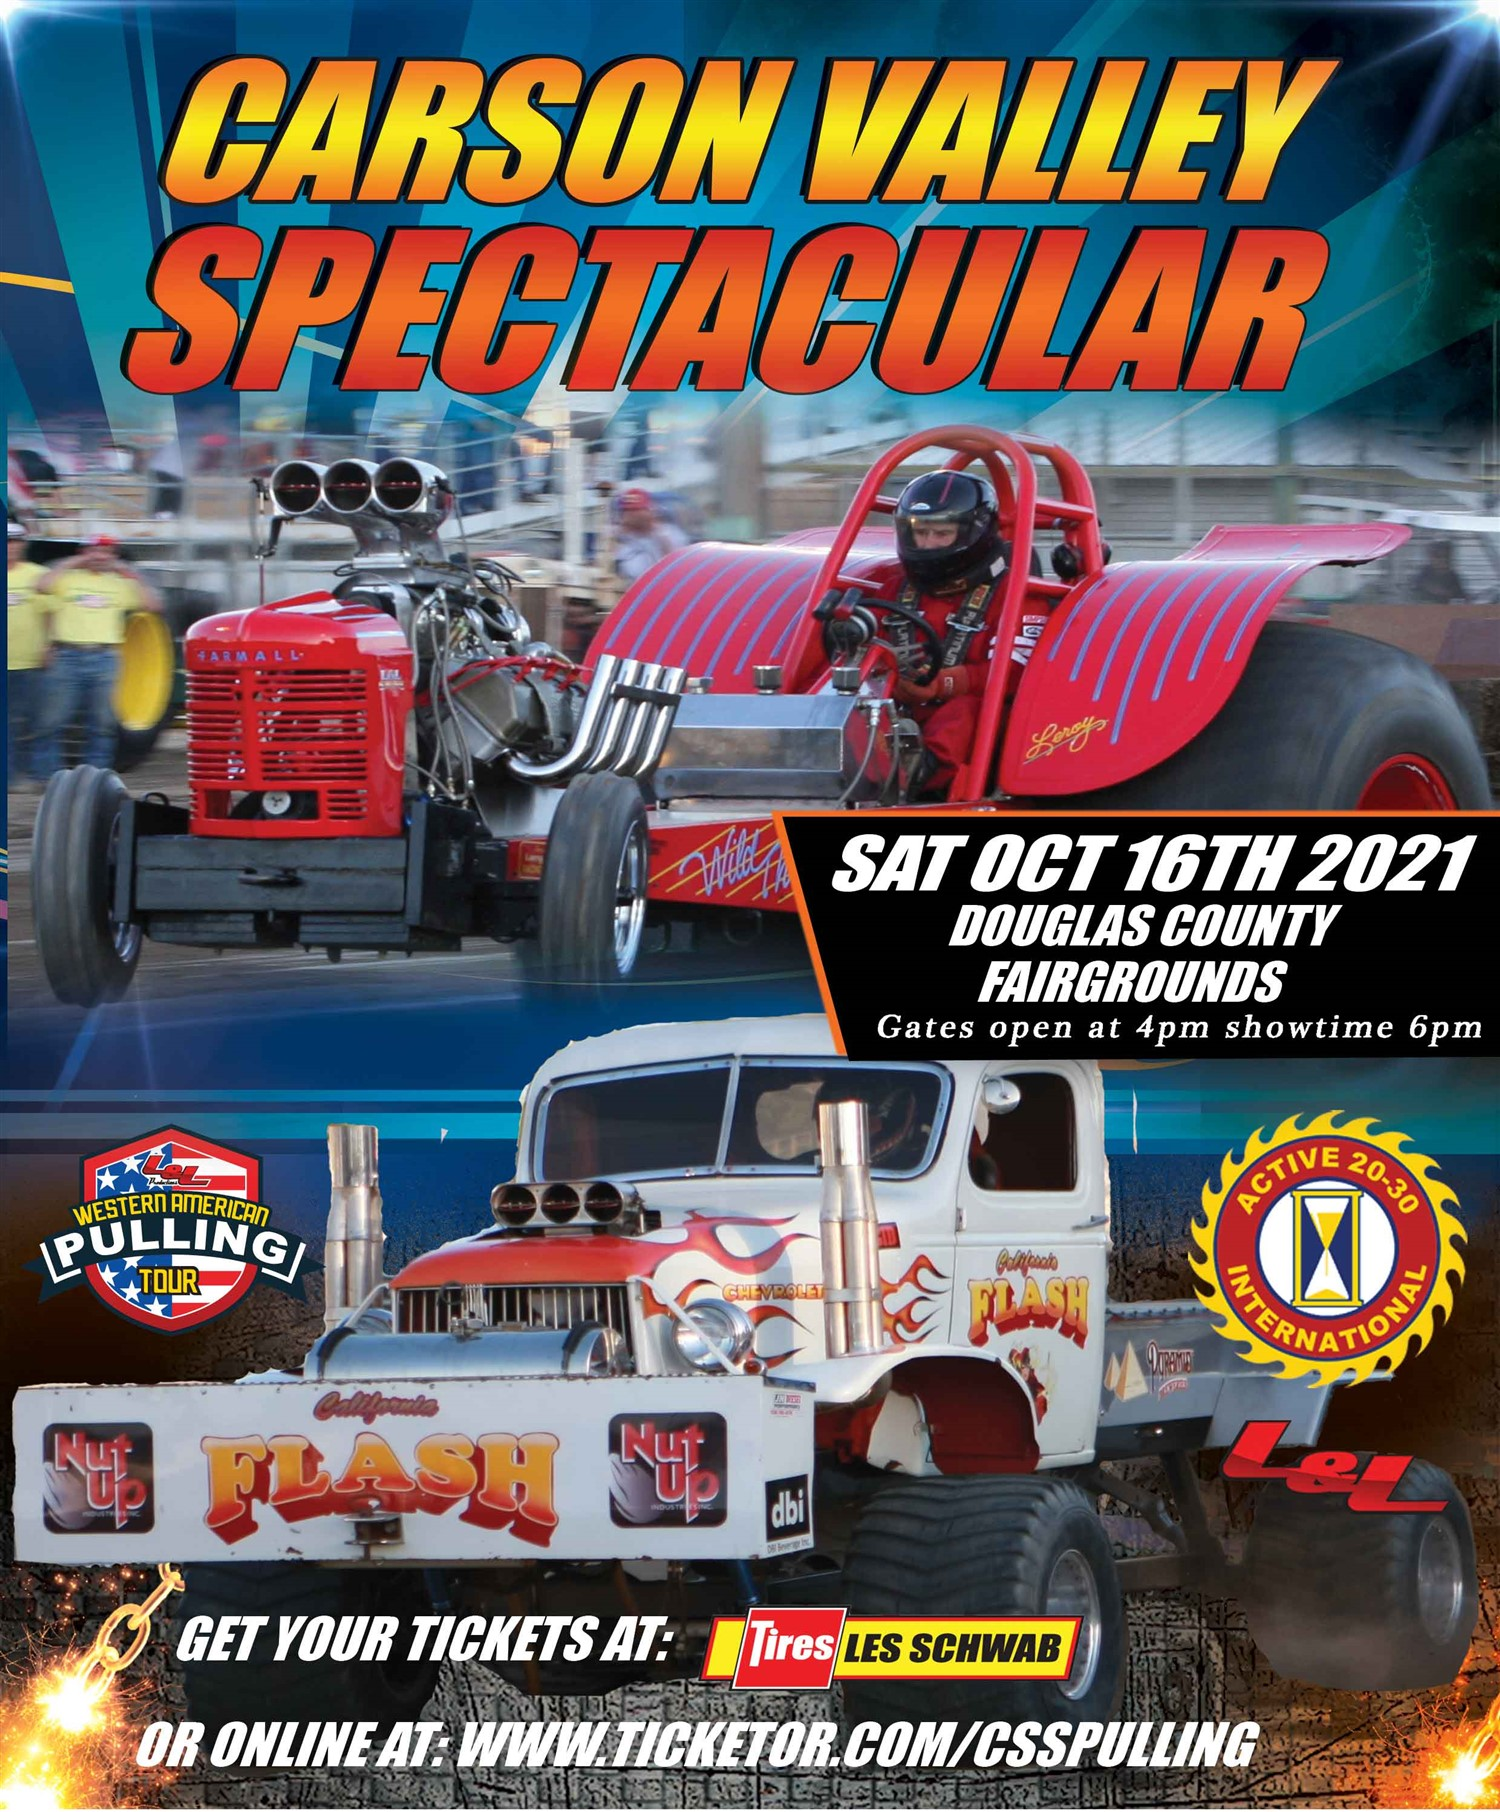 Carson Valley Spectacular Truck & Tractor Pull on Sep 04, 18:00@Douglas County Fairgrounds - Buy tickets and Get information on L & L Productions